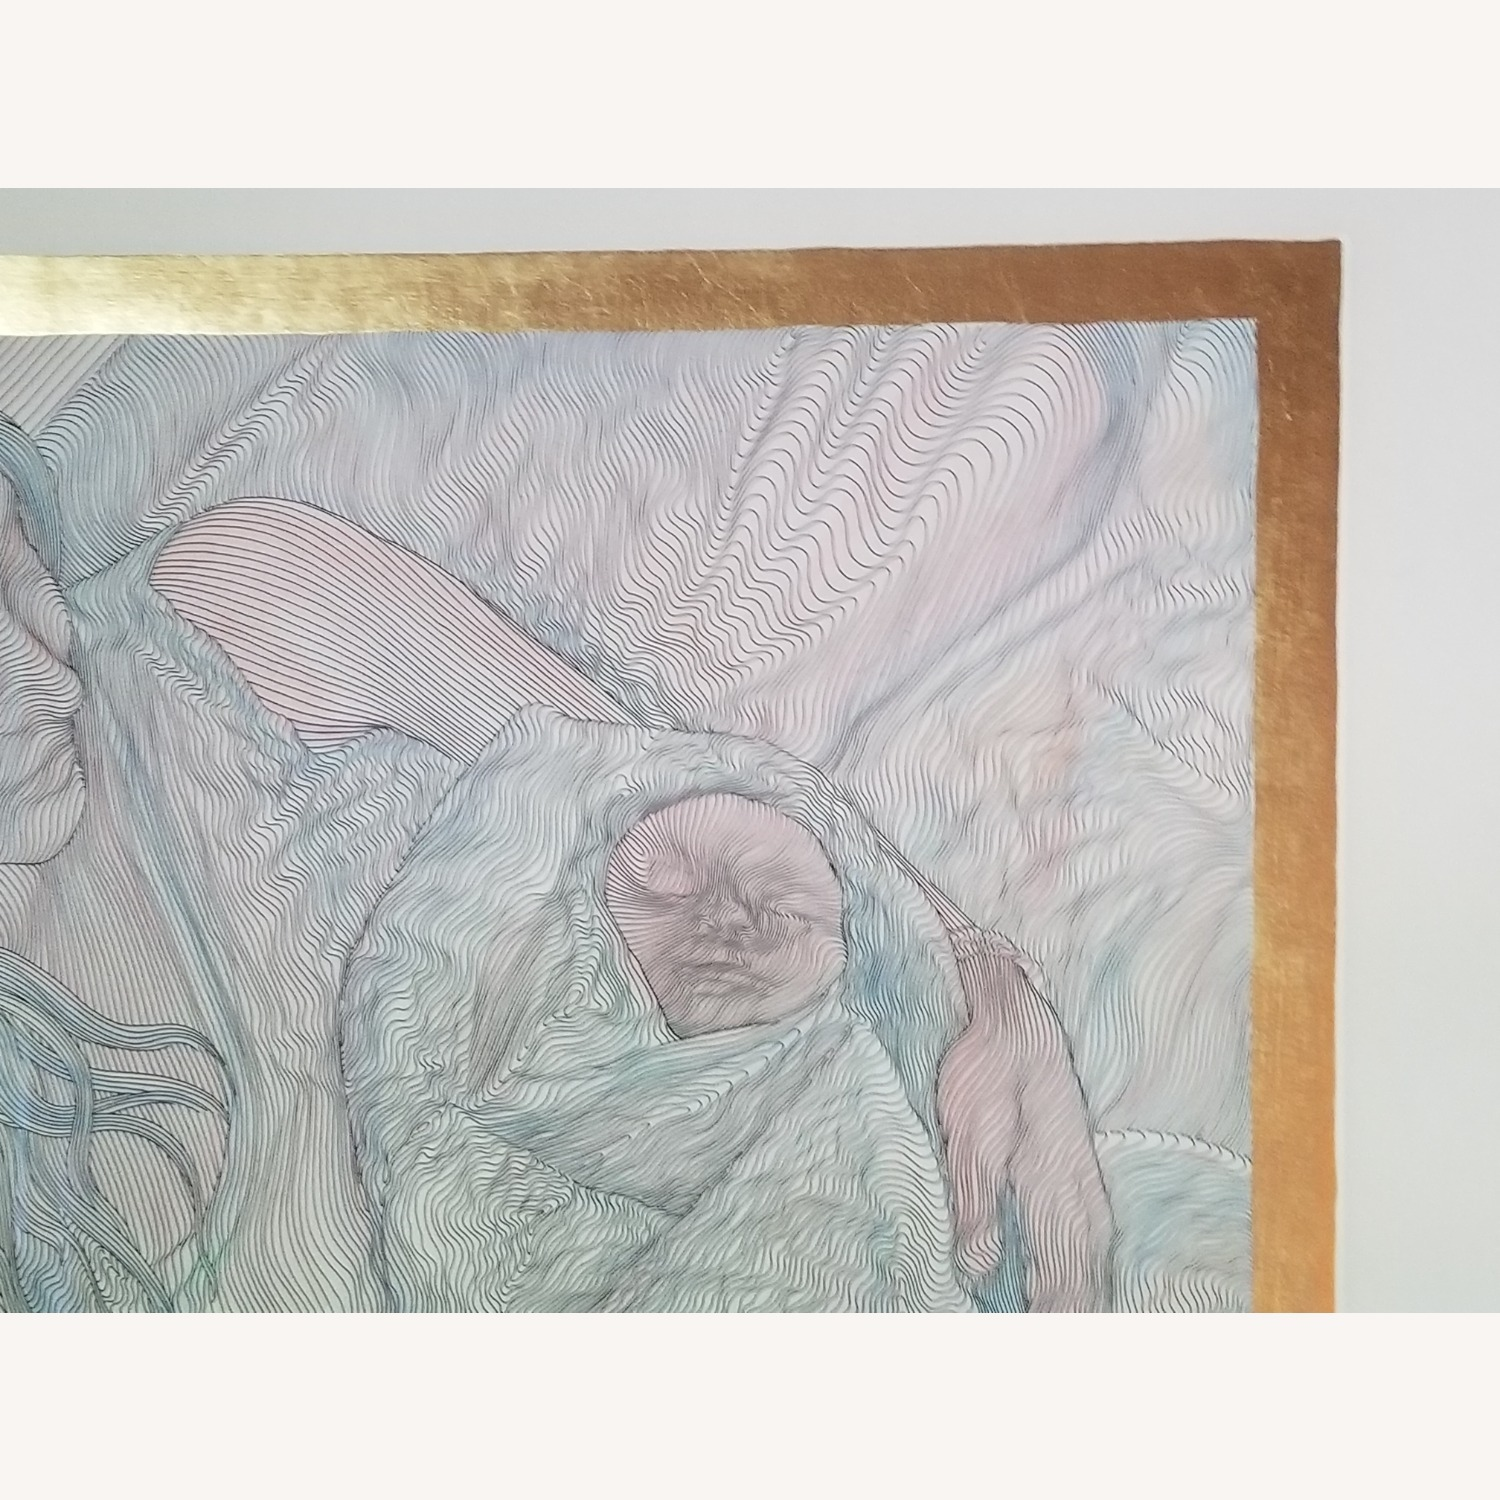 Guillaume Azoulay Original Line Drawing Lithograph - image-4